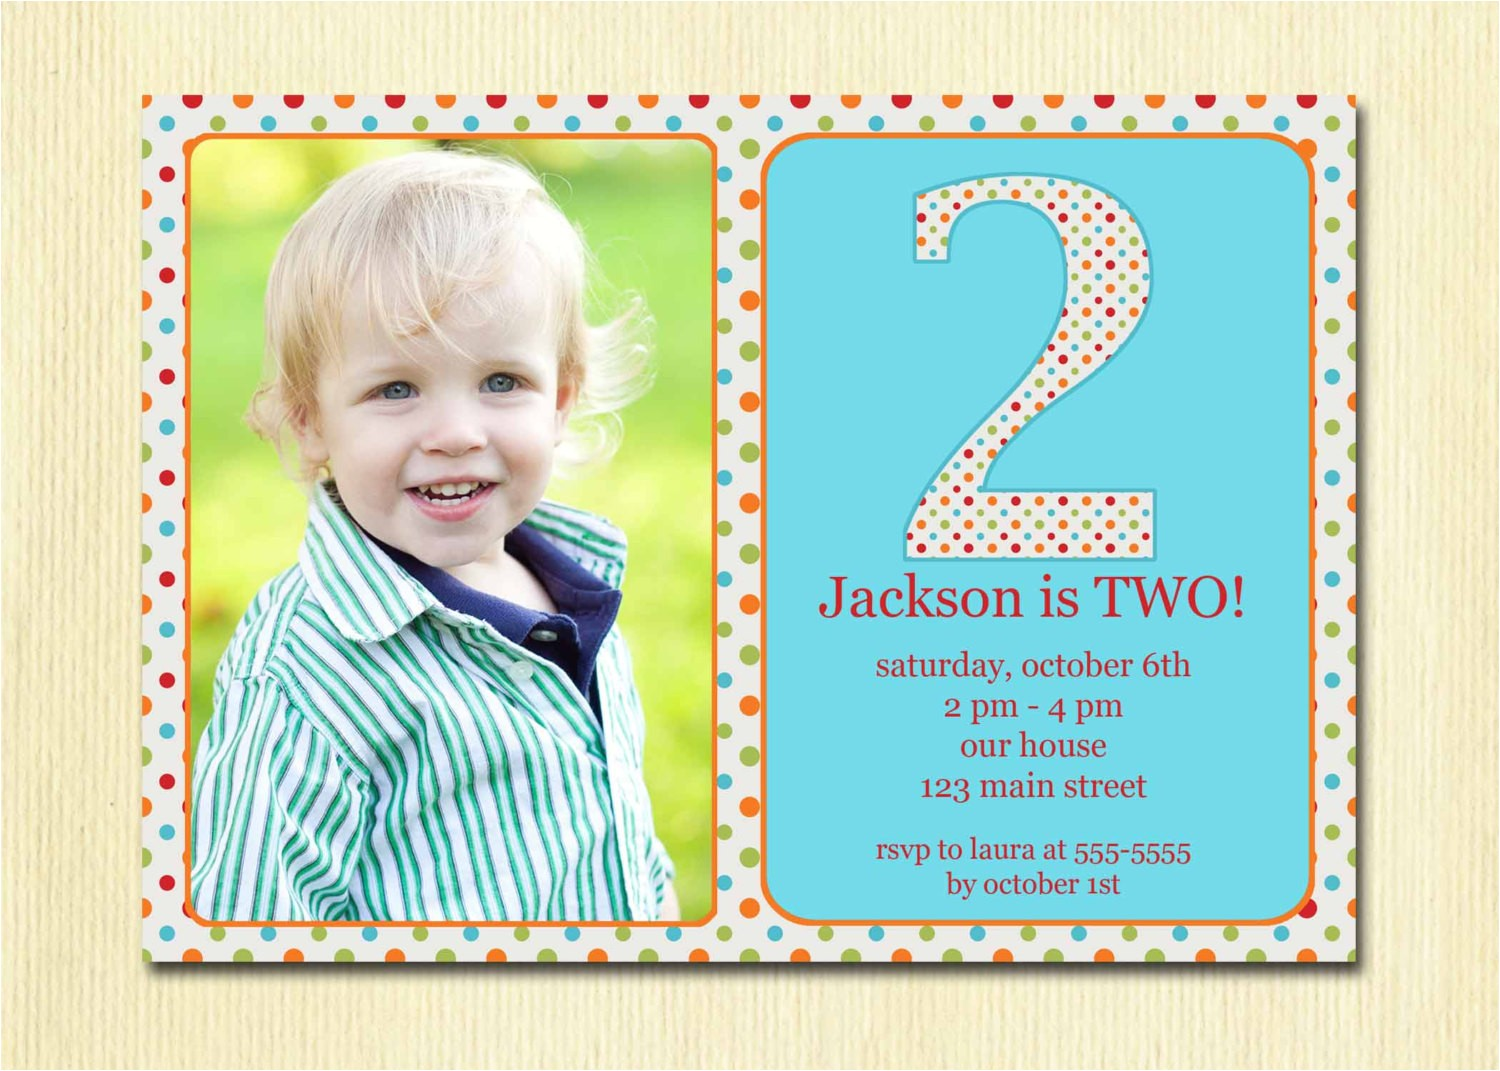 2 Year Old Birthday Party Invitation Wording 2 Year Old Birthday Invitations Templates Free